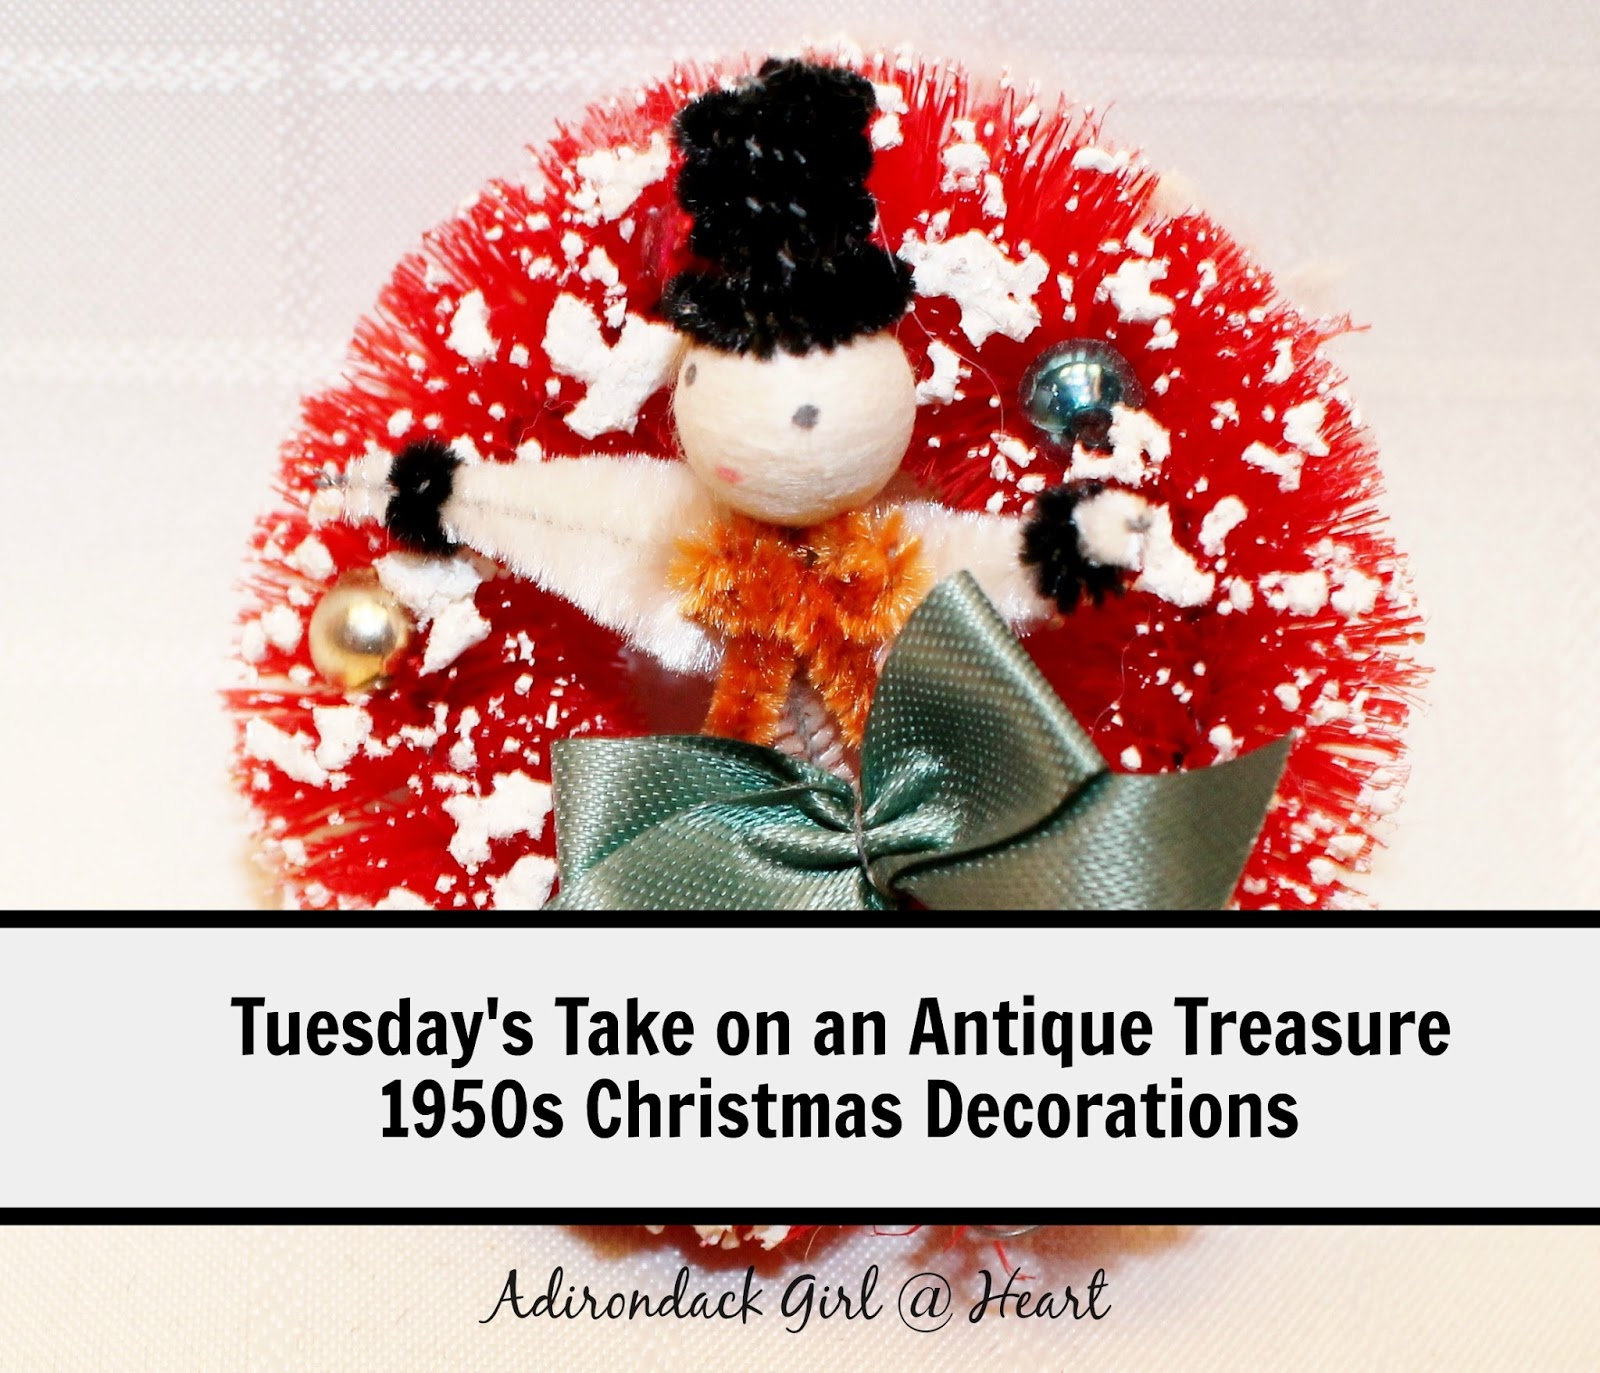 Vintage christmas decorations 1950s - Tuesday S Take On An Antique Treasure 1950s Christmas Decorations